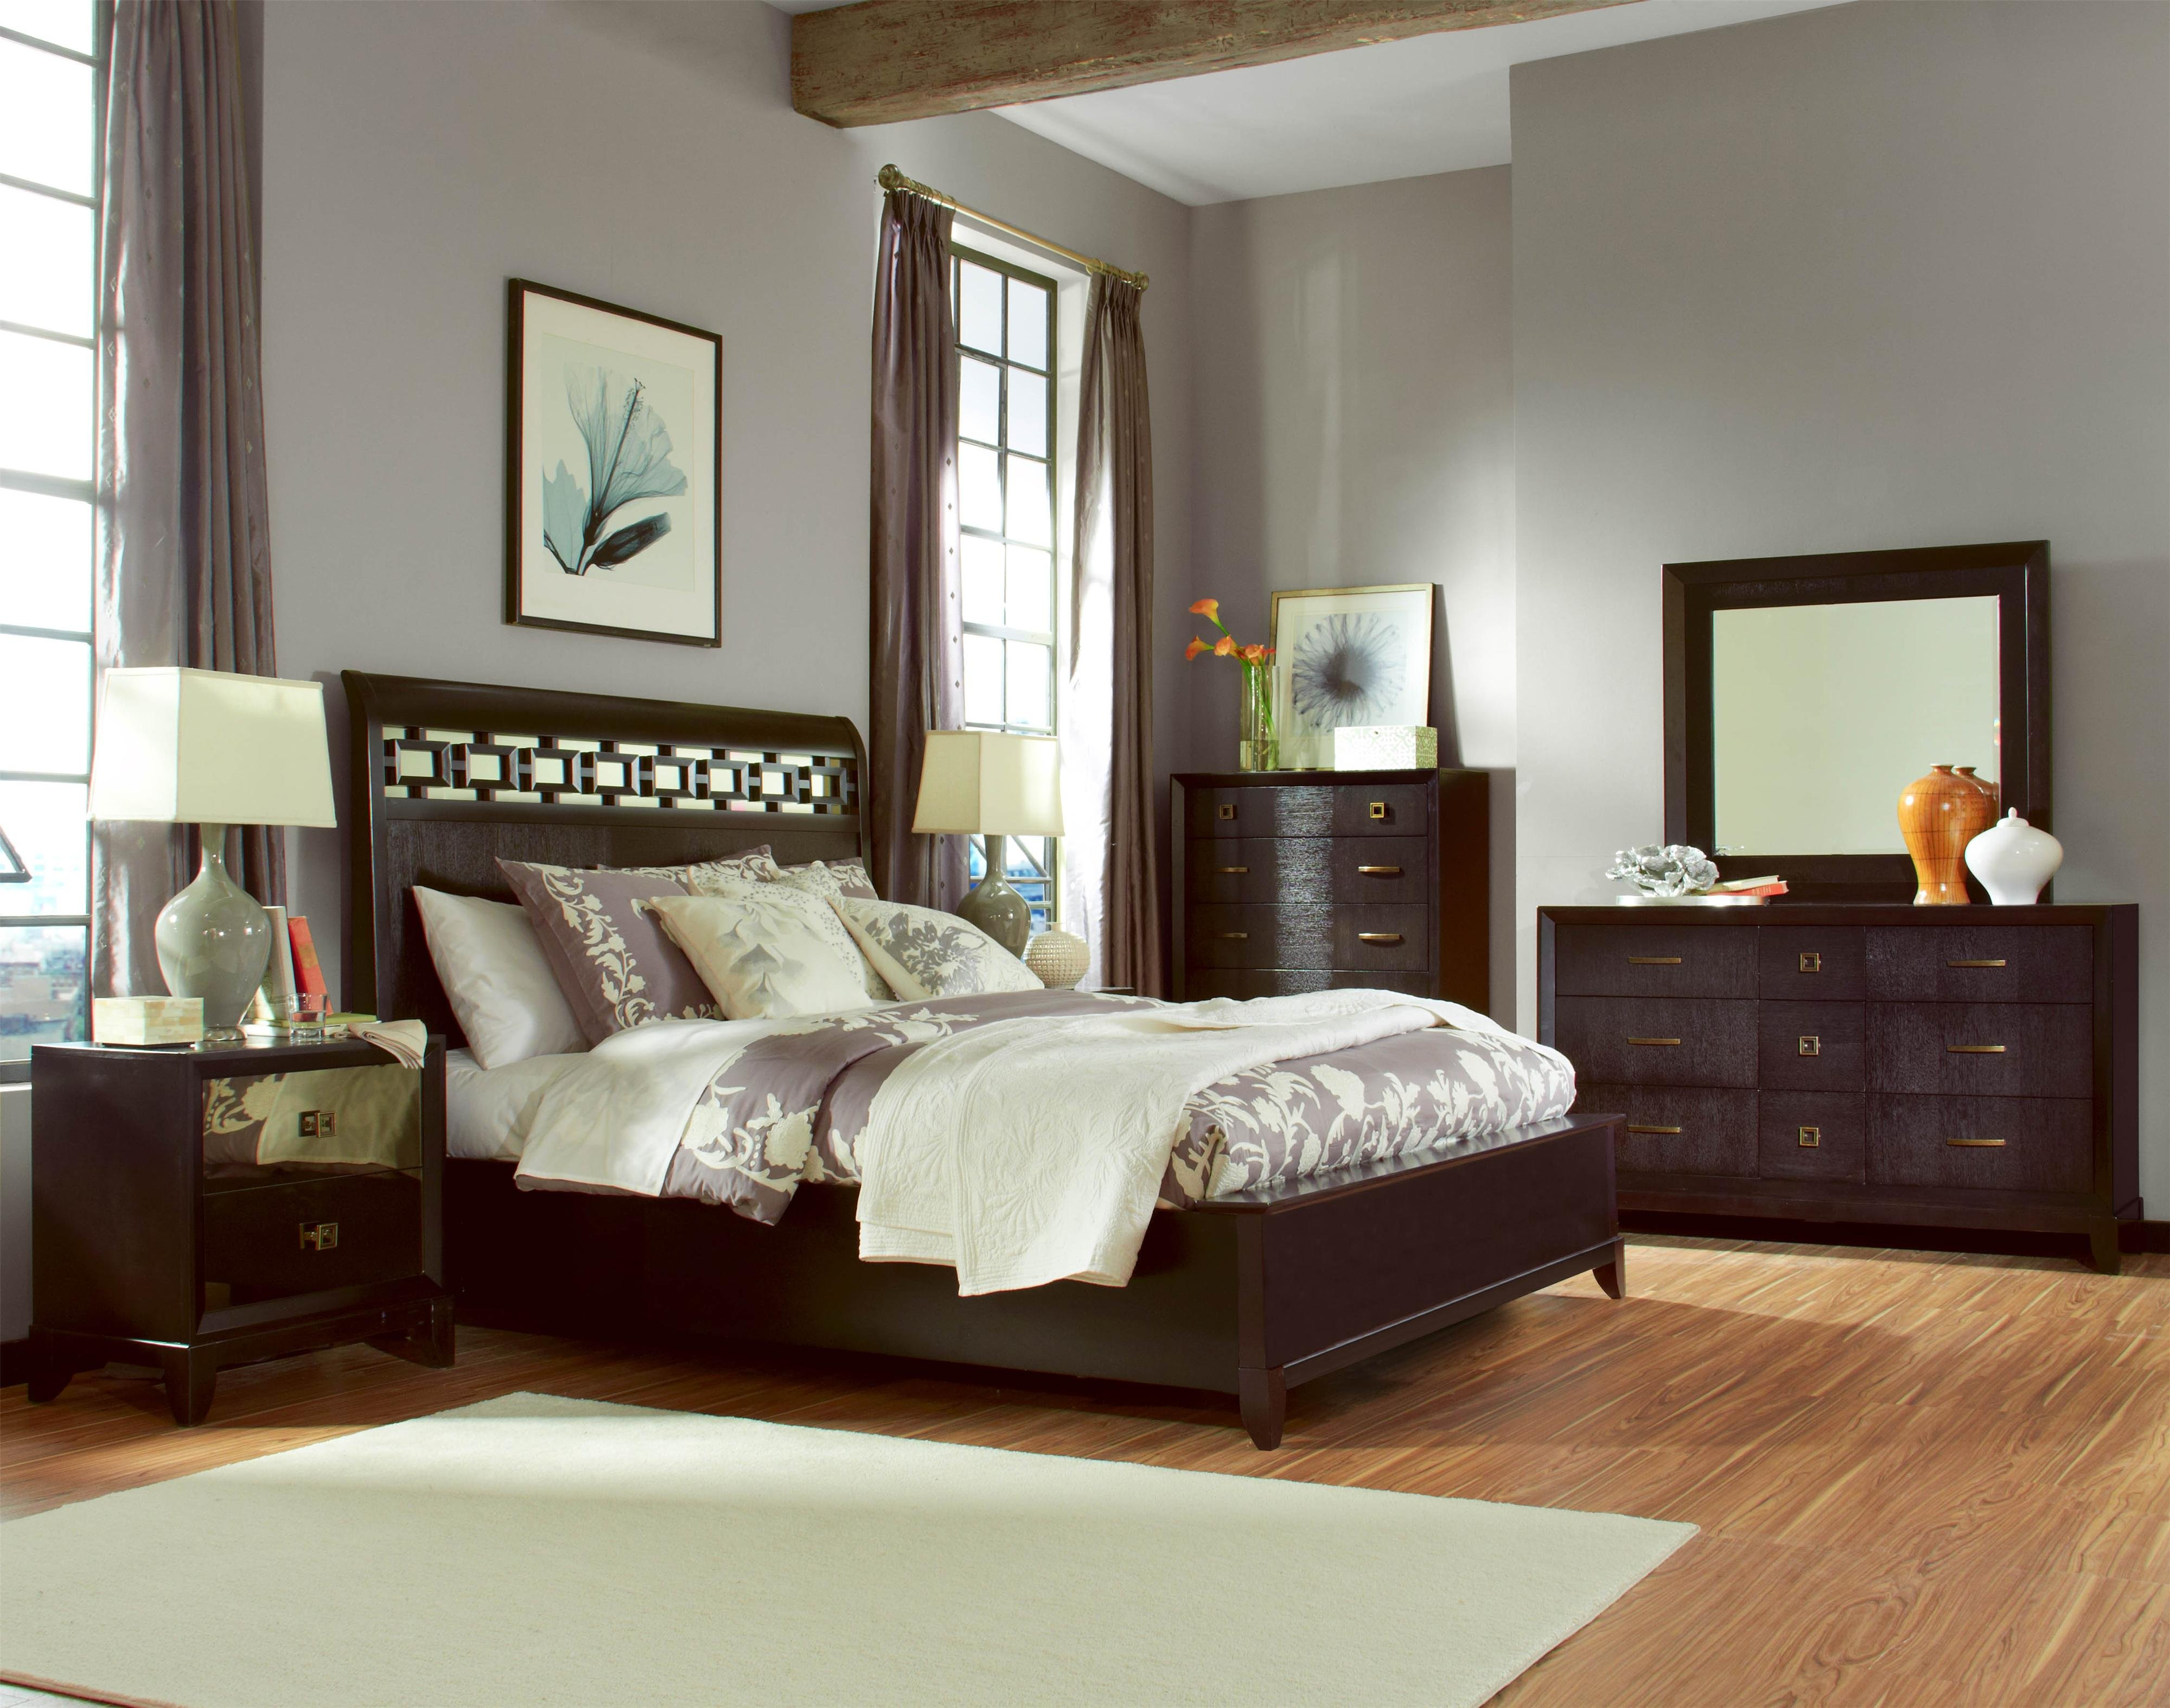 quality bedroom cabinets high quality bedroom furniture  home design  high quality king bedroom furniture achjtfg - Decorating ideas